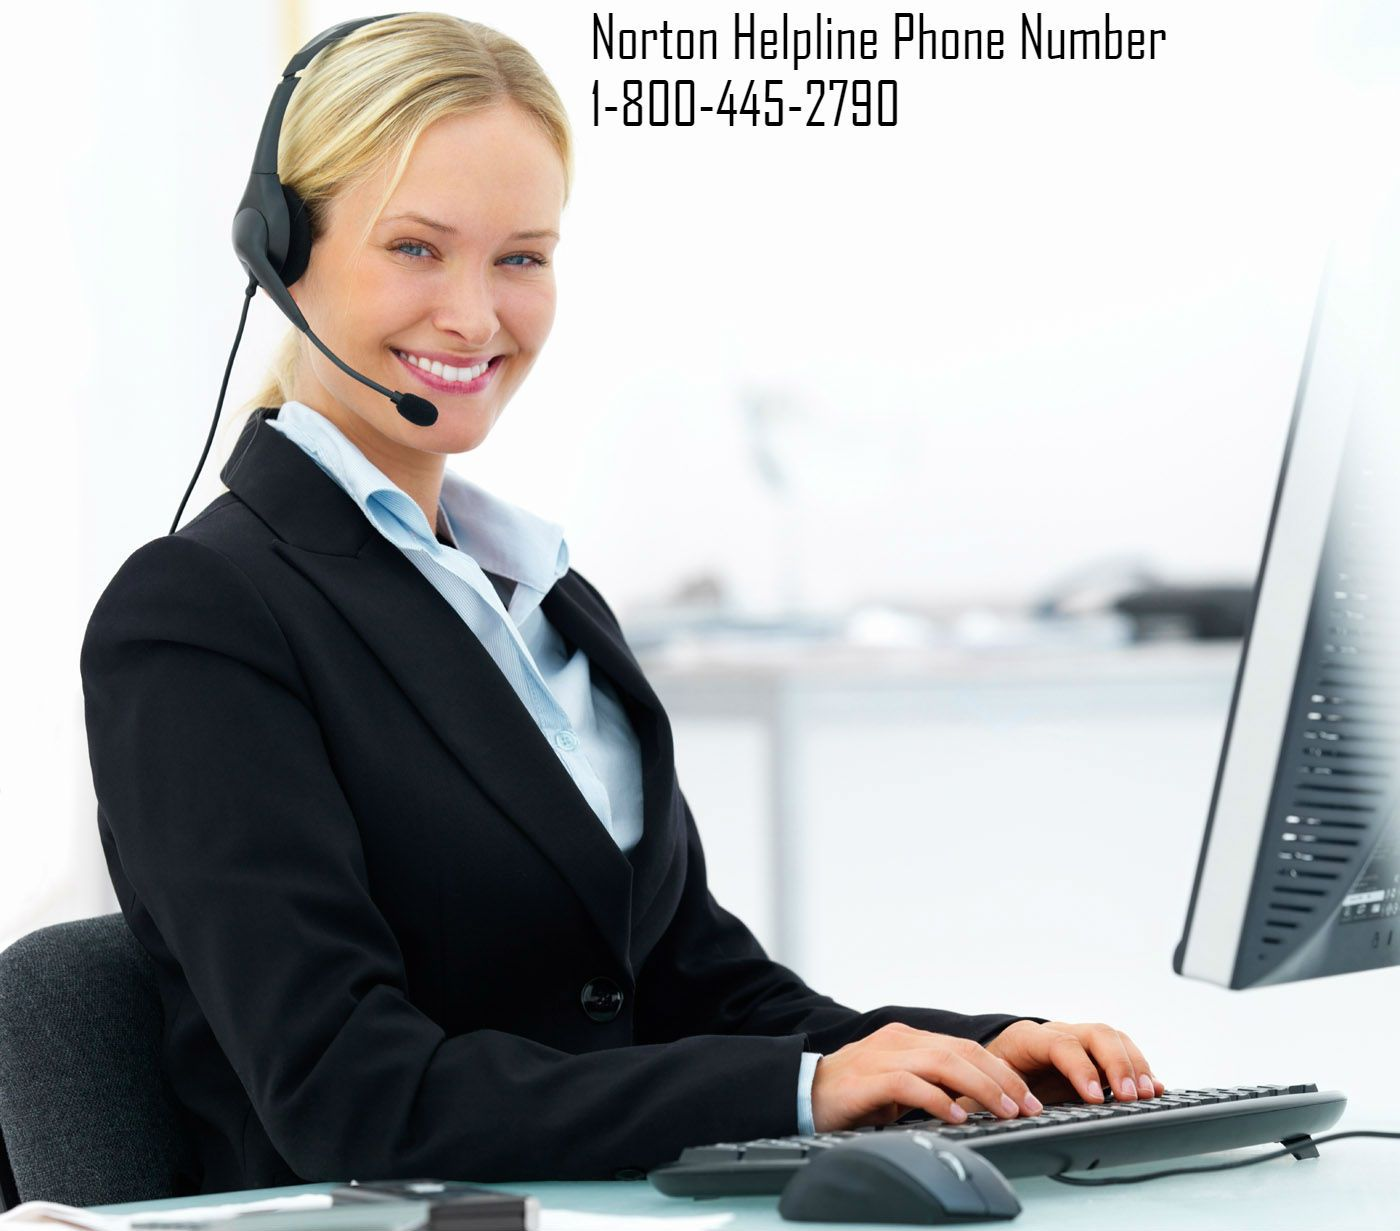 Norton canada phone number 1800 445 2790. Norton customer